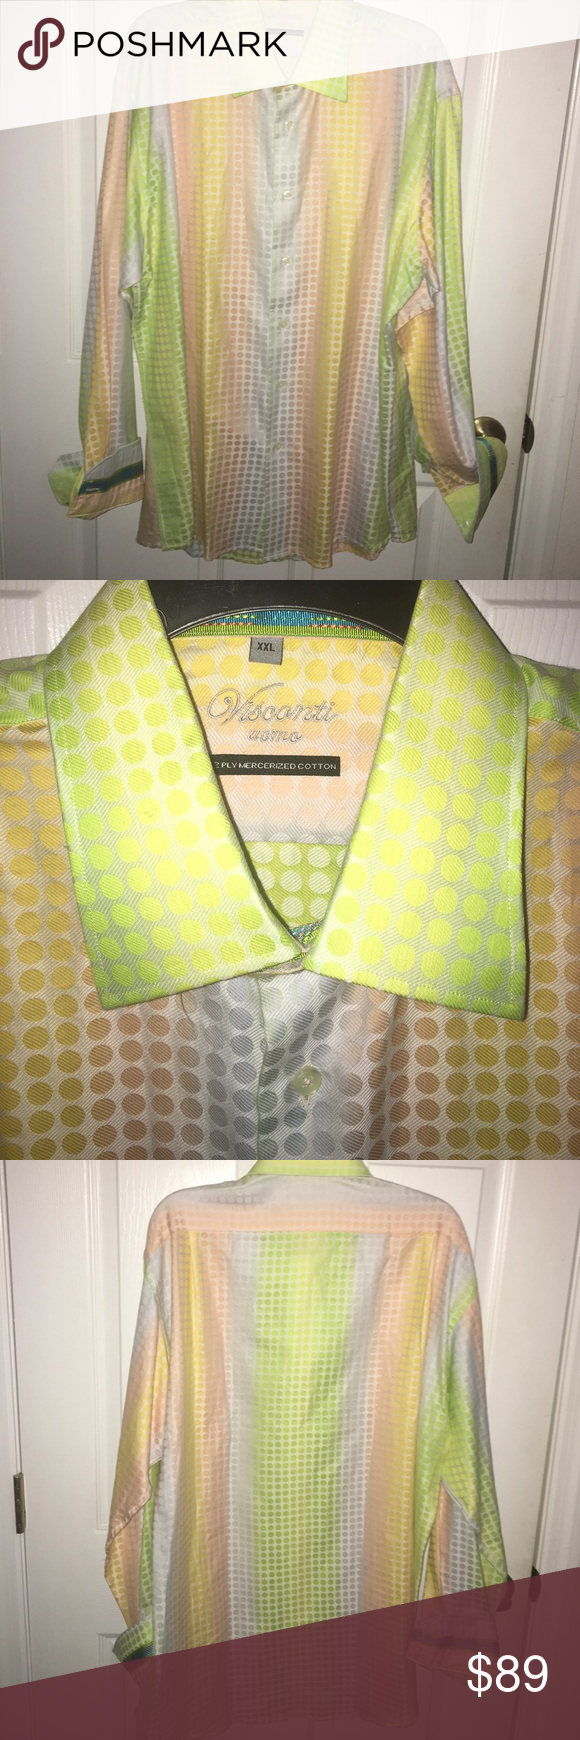 Luciano Visconti Uomo Pastel Polka Dot Shirt XXL Luciano Visconti Uomo 2-Ply Mercerized Cotton pastel multicolor polkadot flip cuff shirt colors are green, yellow, orange & lavender with a beautiful turquoise blue stripe on the flip cuff and inside collar SZ XXL visconti Shirts Dress Shirts